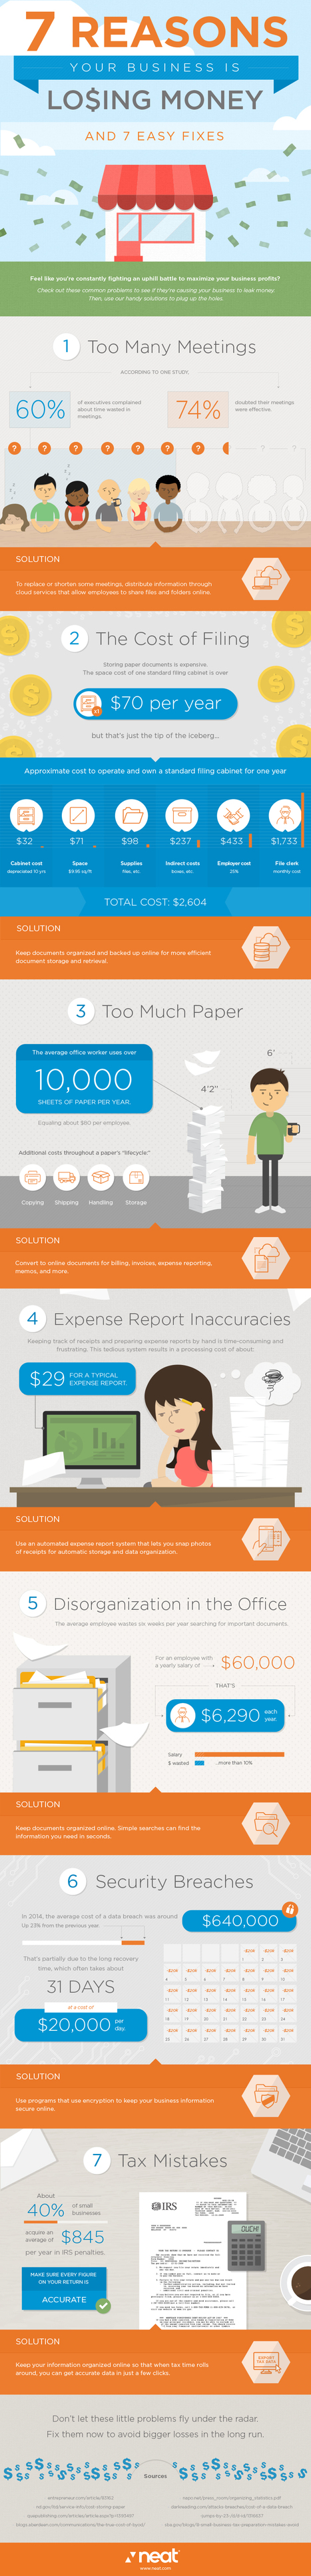 7 Ways the Cloud Can Help Your Business Save Money #Infographic7 Ways the Cloud Can Help Your Business Save Money #Infographic | MarketingHits | Scoop.it